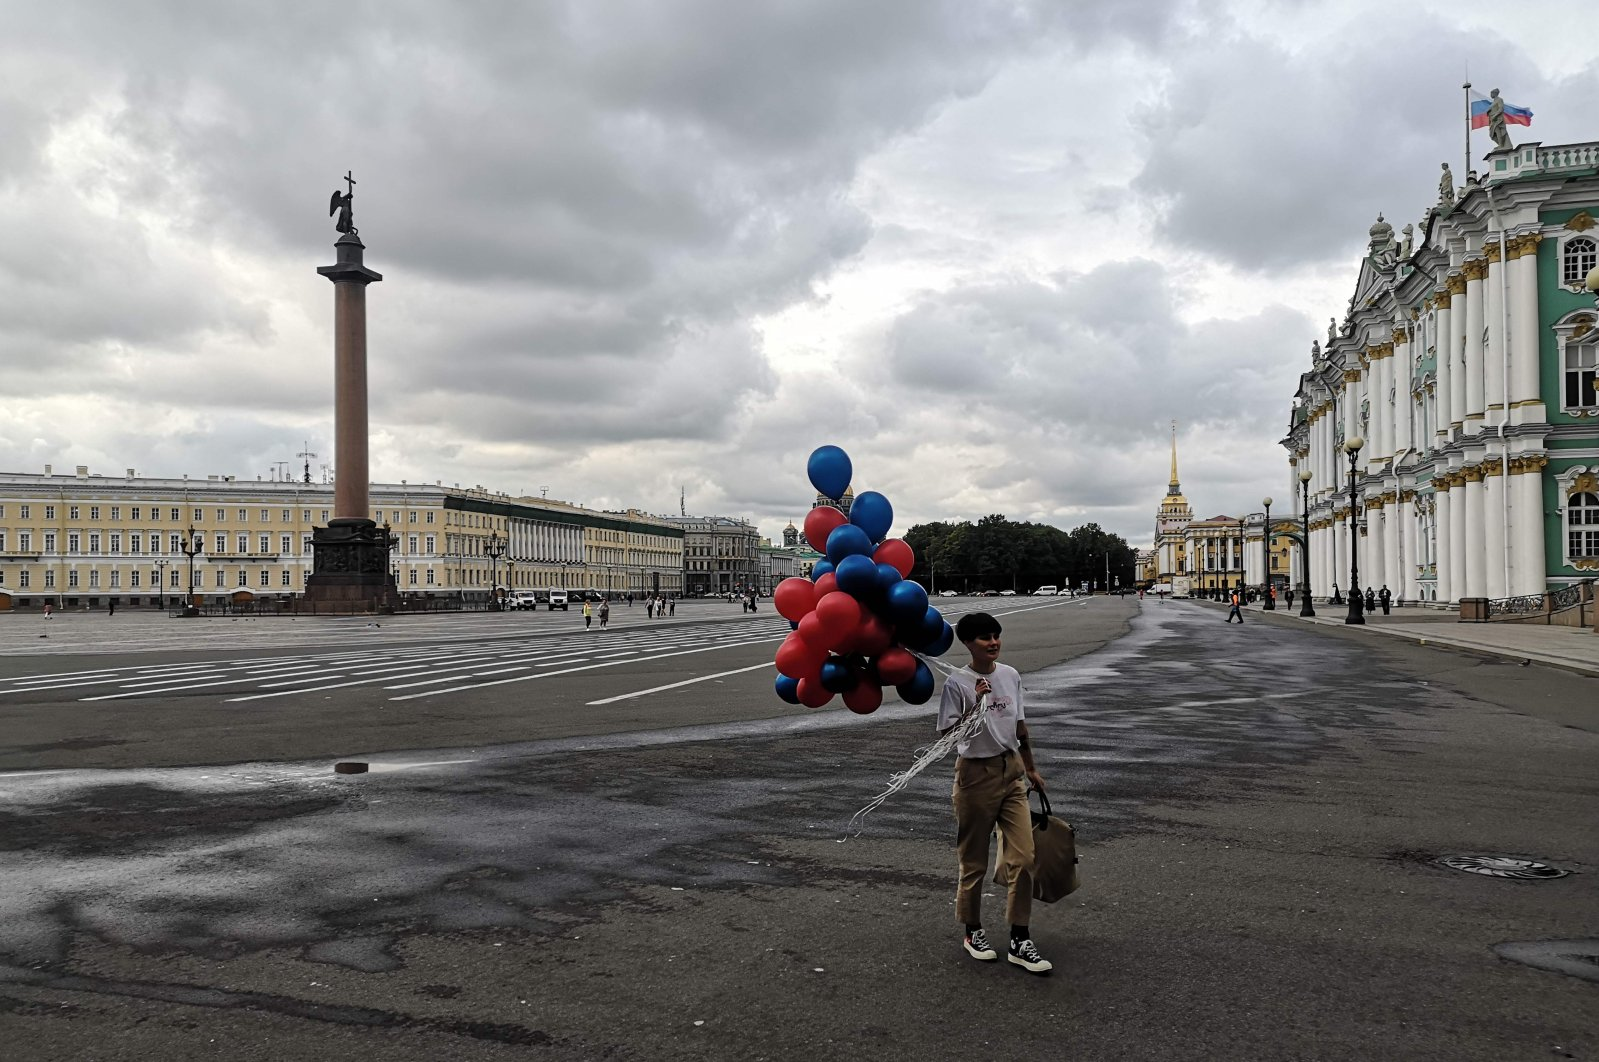 A woman walks with balloons on Palace Square in Saint Petersburg, Russia, Aug. 31, 2020. (AFP Photo)